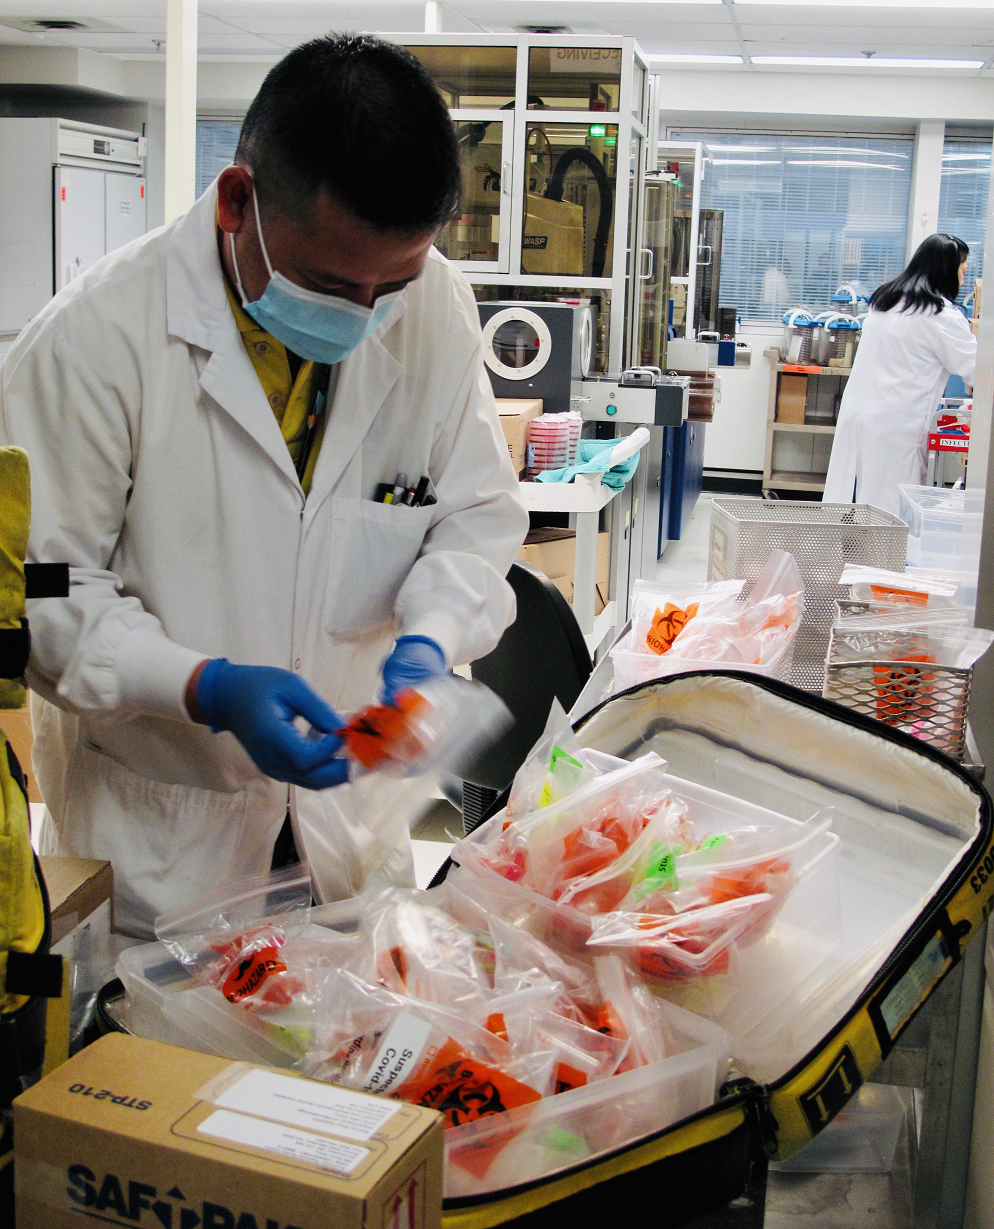 An employee in a lab wearing a mask, labcoat and gloves, standing sorting through bagged samples the lab has received.